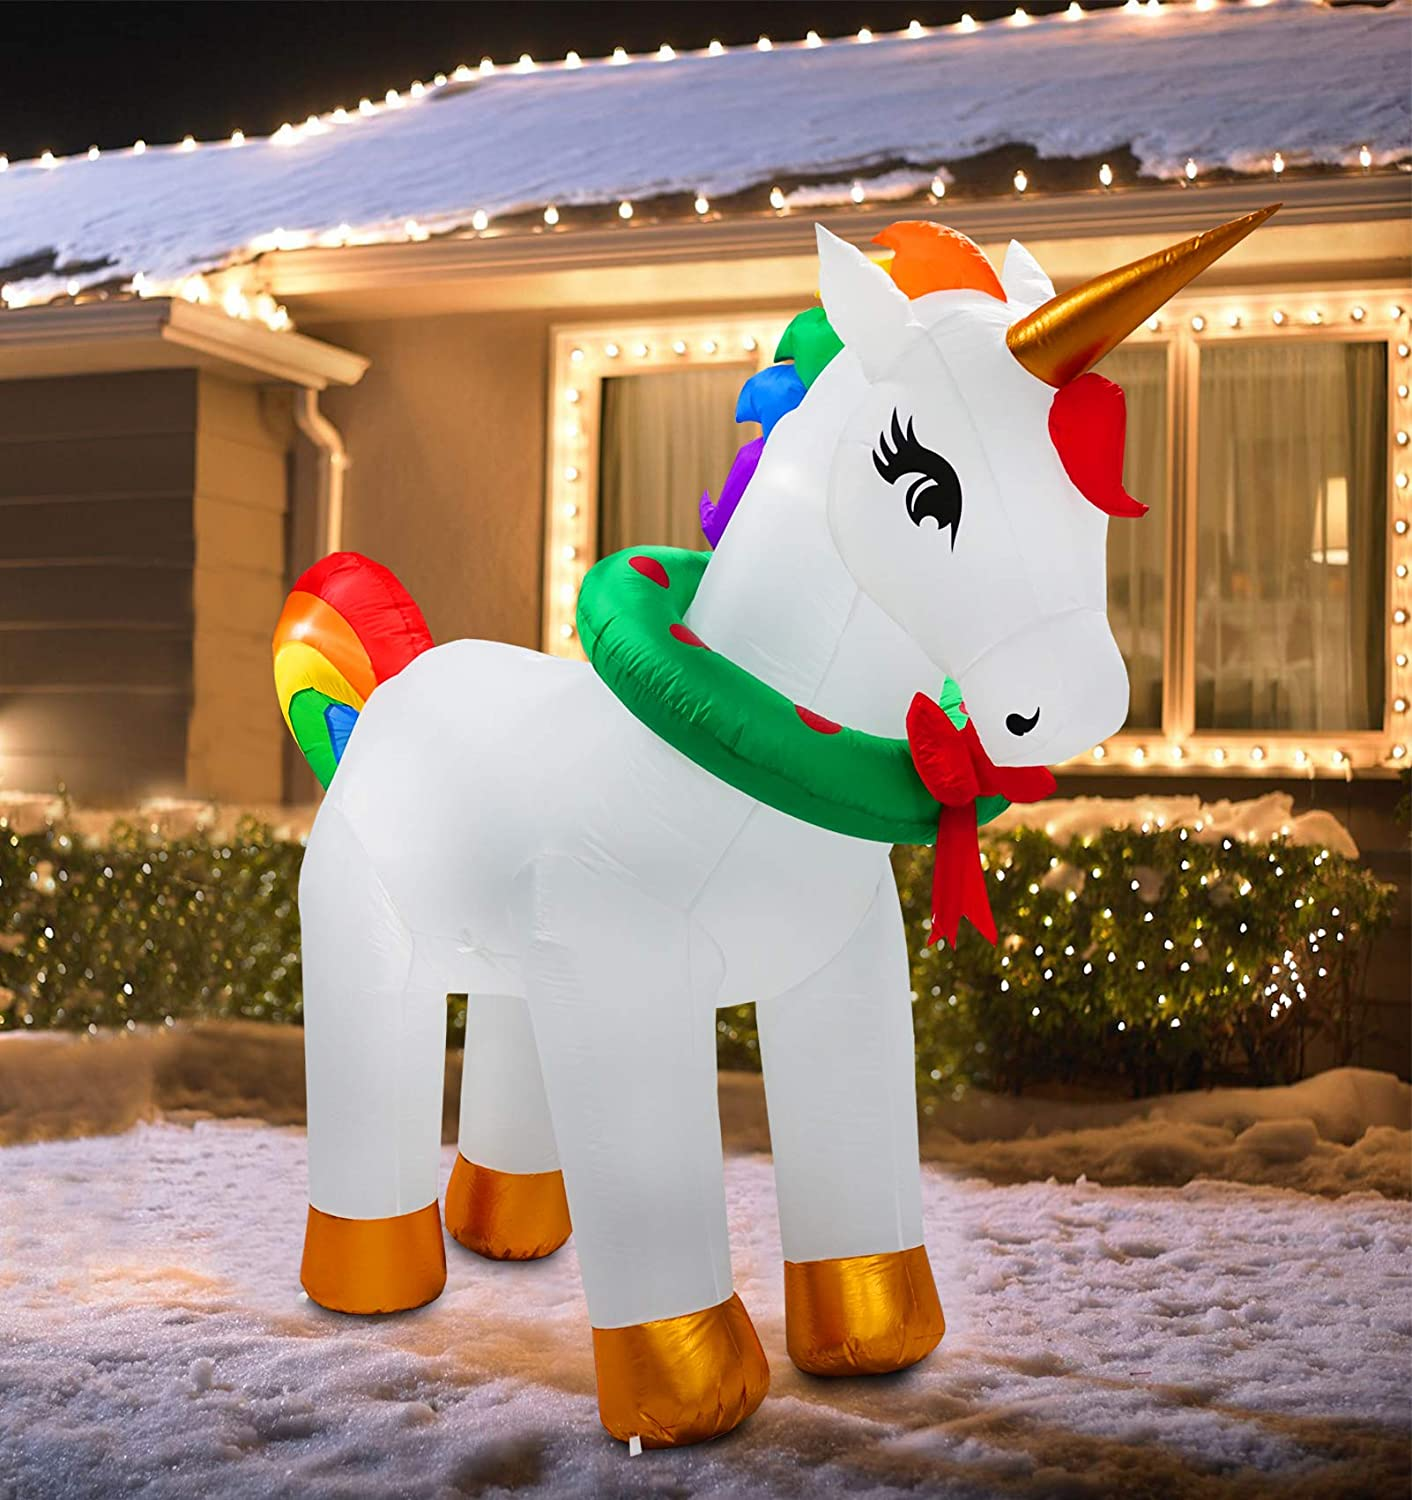 B.N.X 7Ft Inflatable Unicorn Decorations for Xmas Light Up for Yard